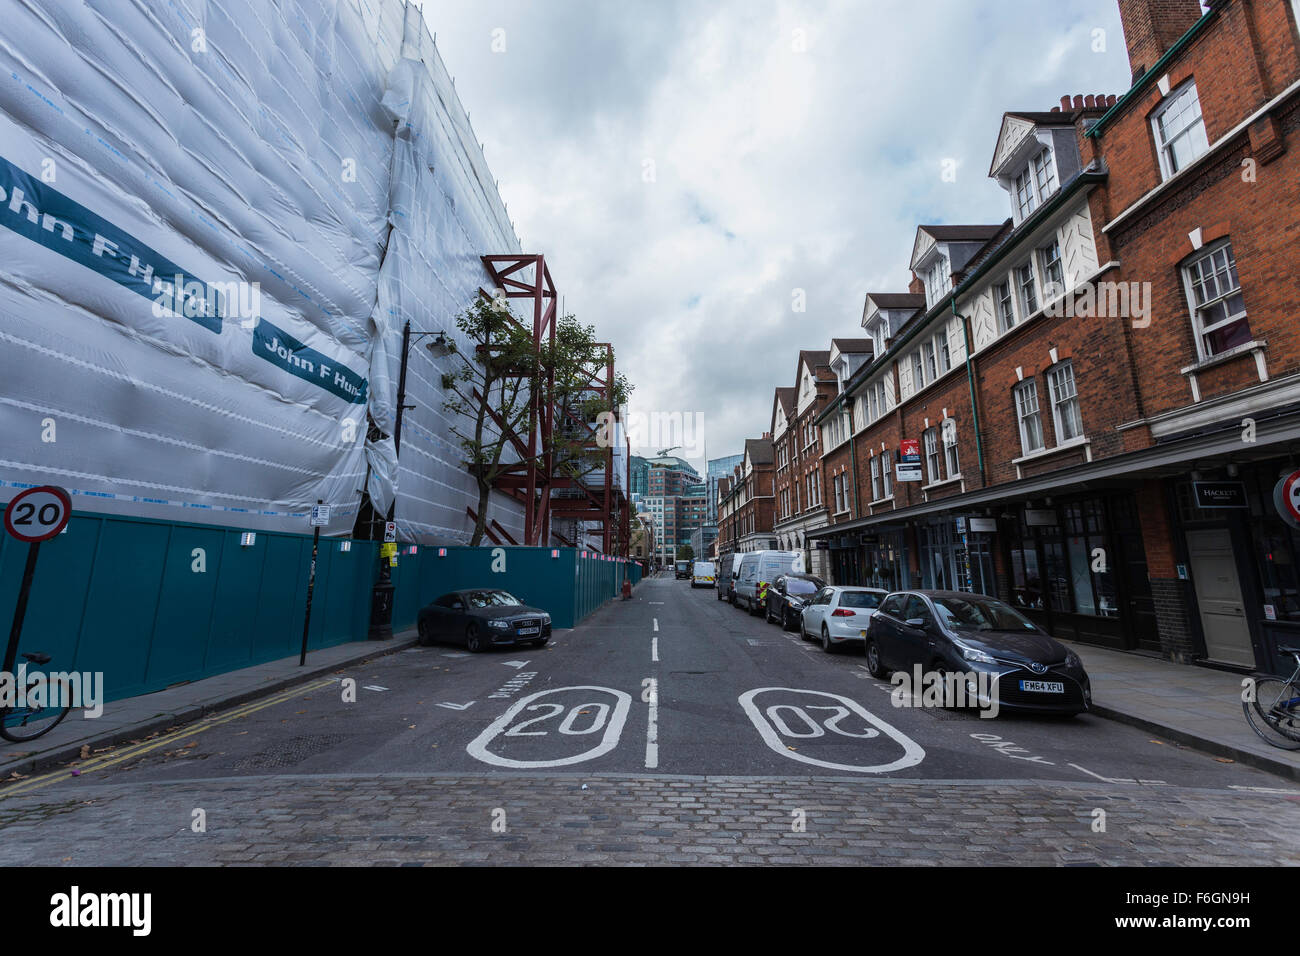 Area Around Spitalfields Markets During Evacuation as a Result of Suspect Unexploded WW2 Bomb on Adjacent Building - Stock Image